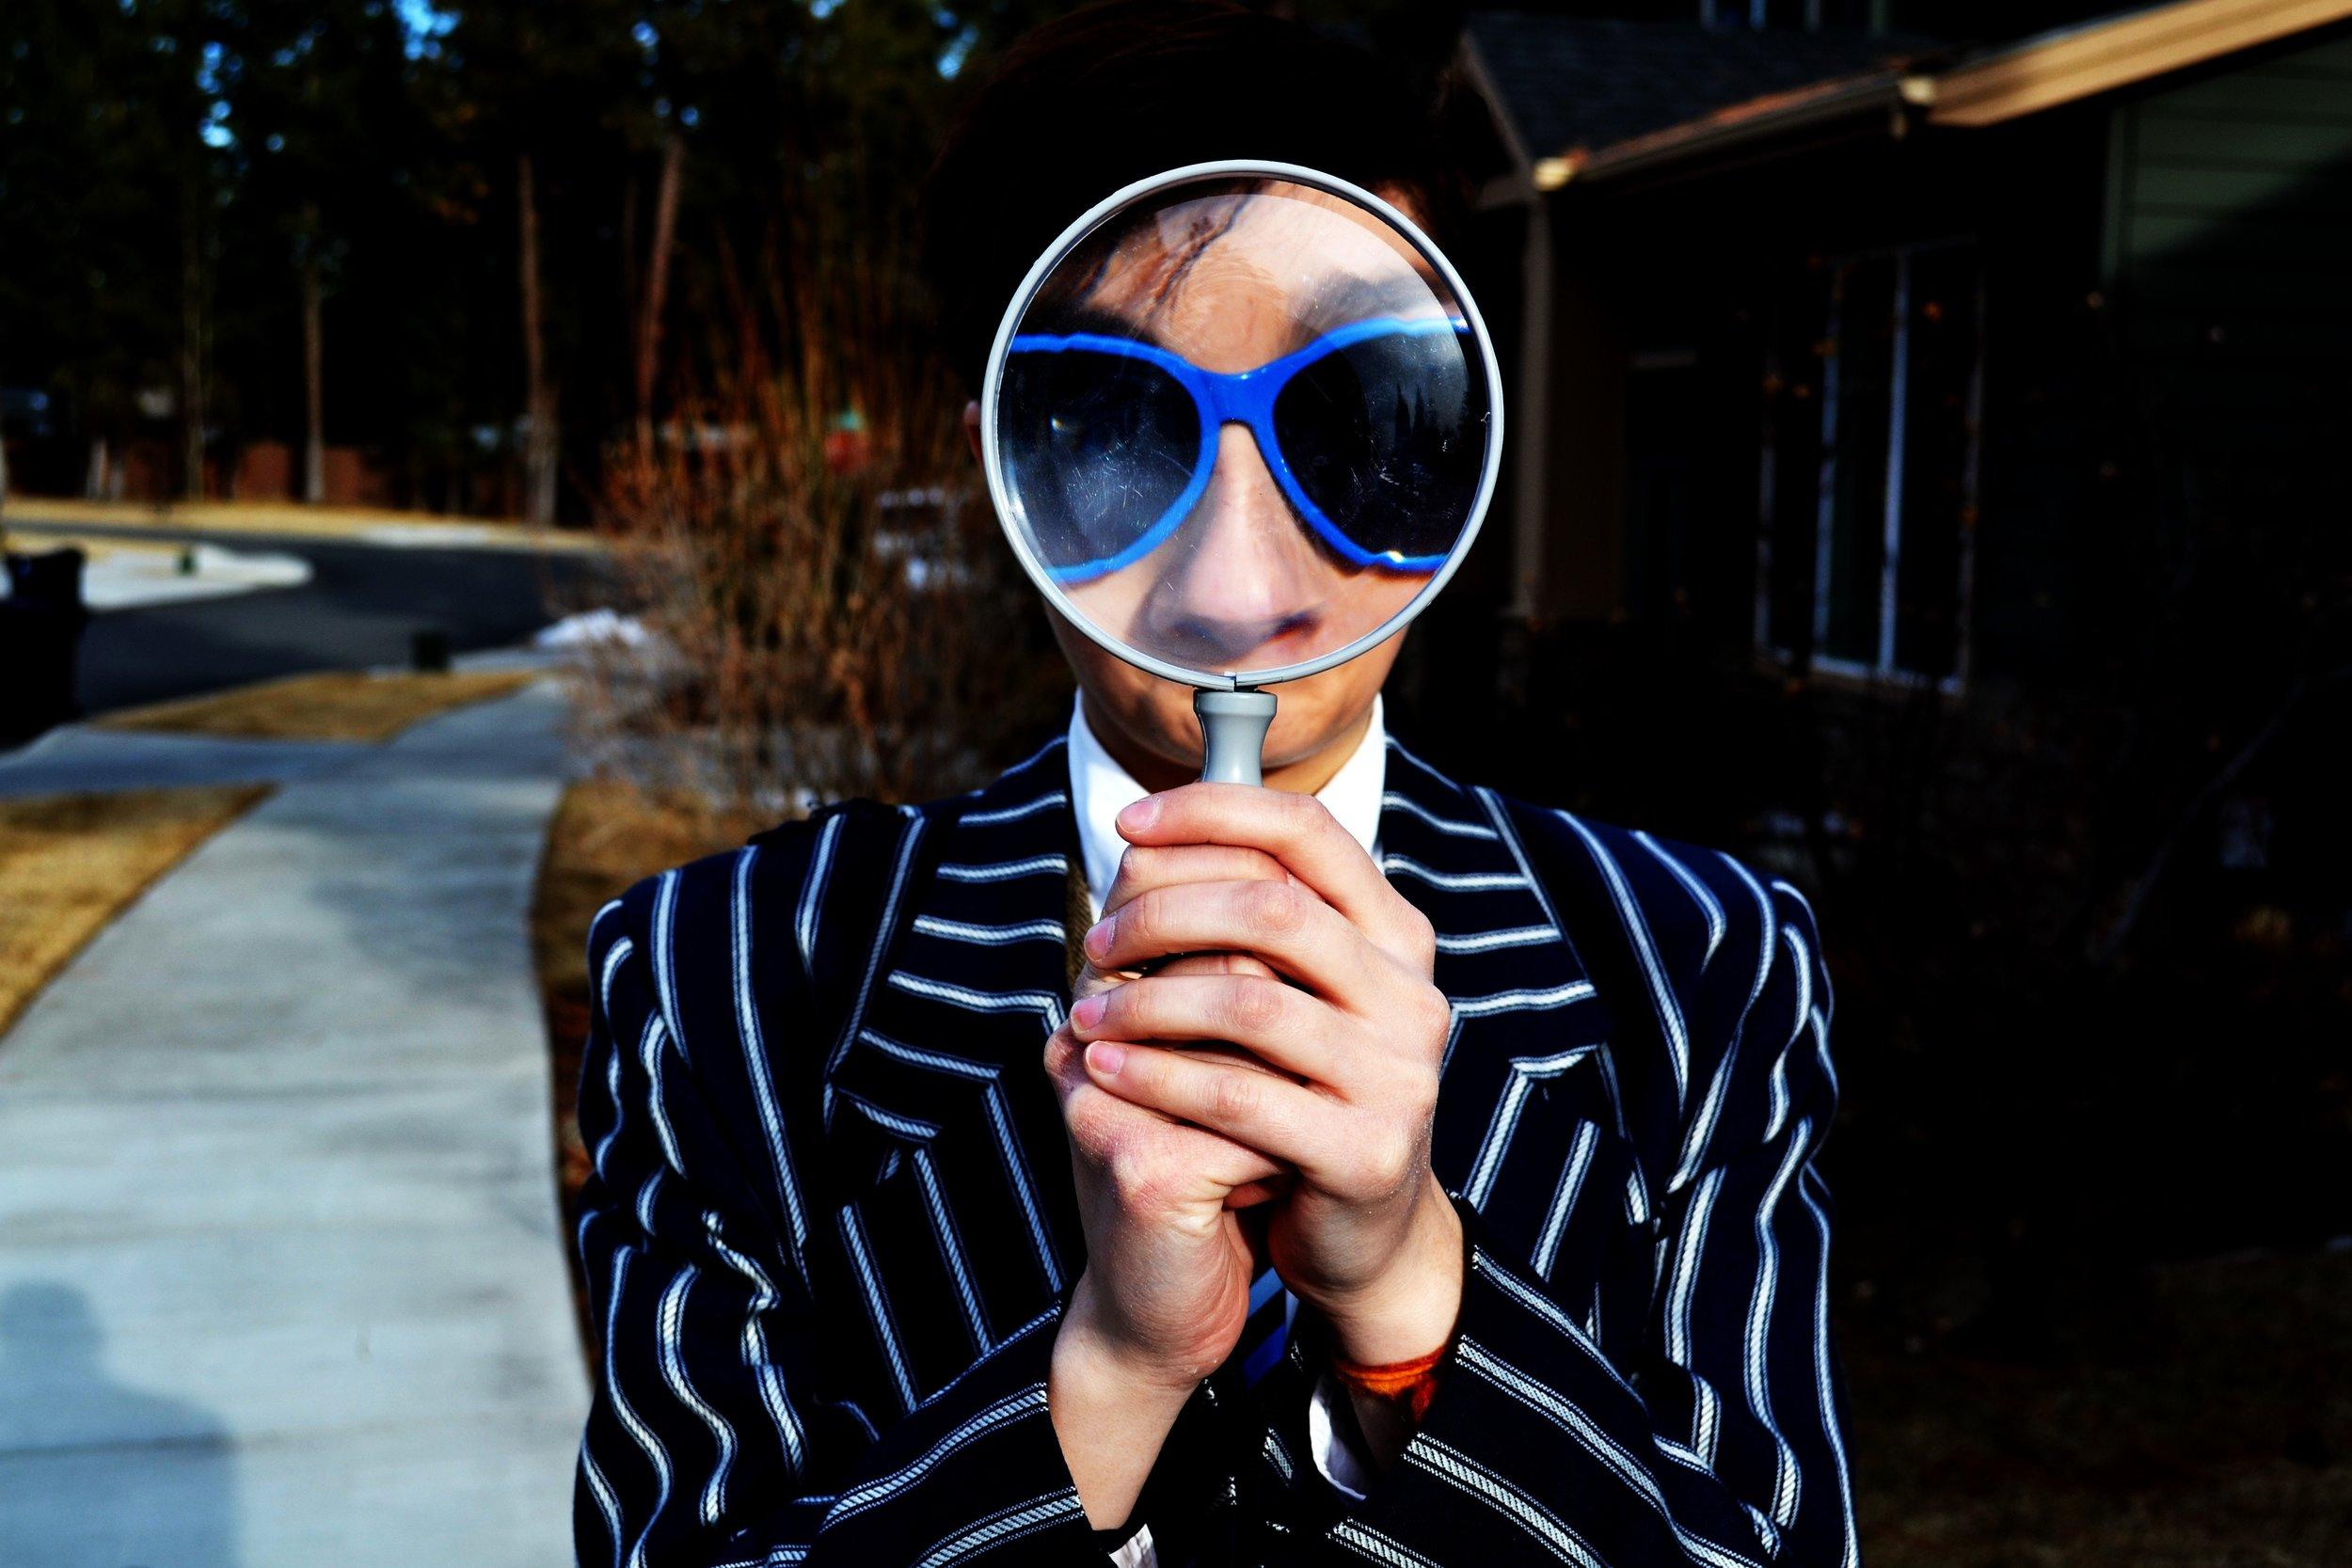 magnifying glass person focus zoom in